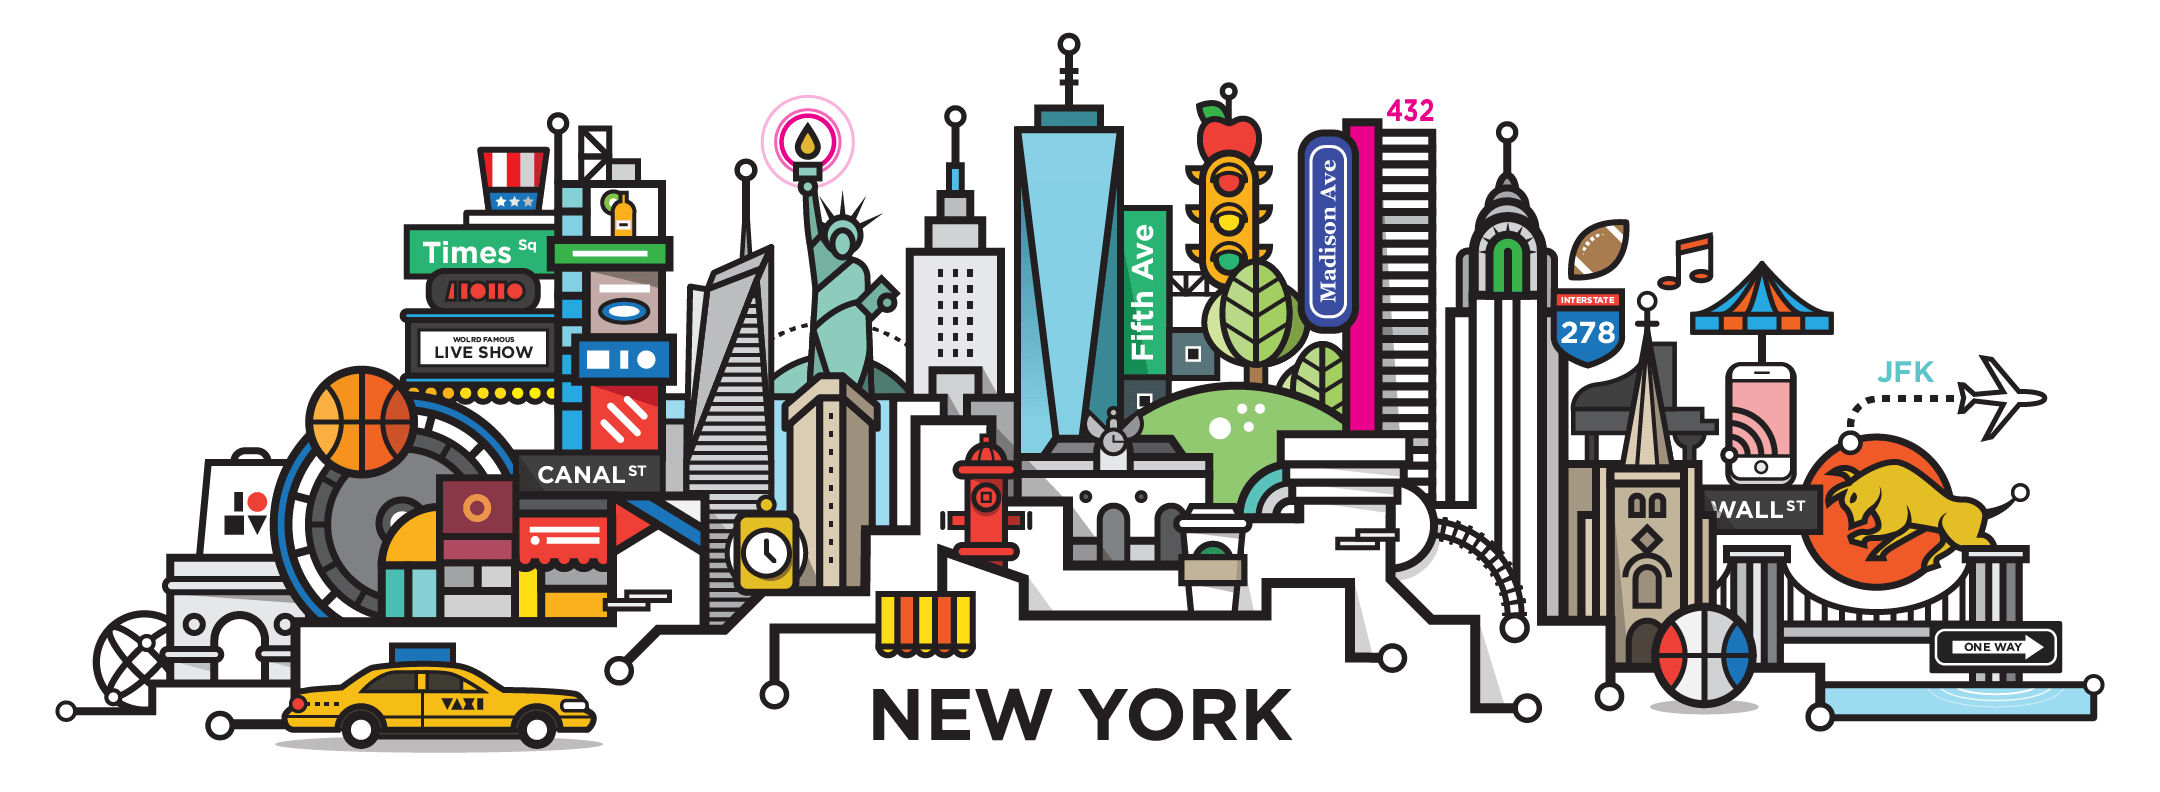 new-york-cityline-illustration-by-loogart